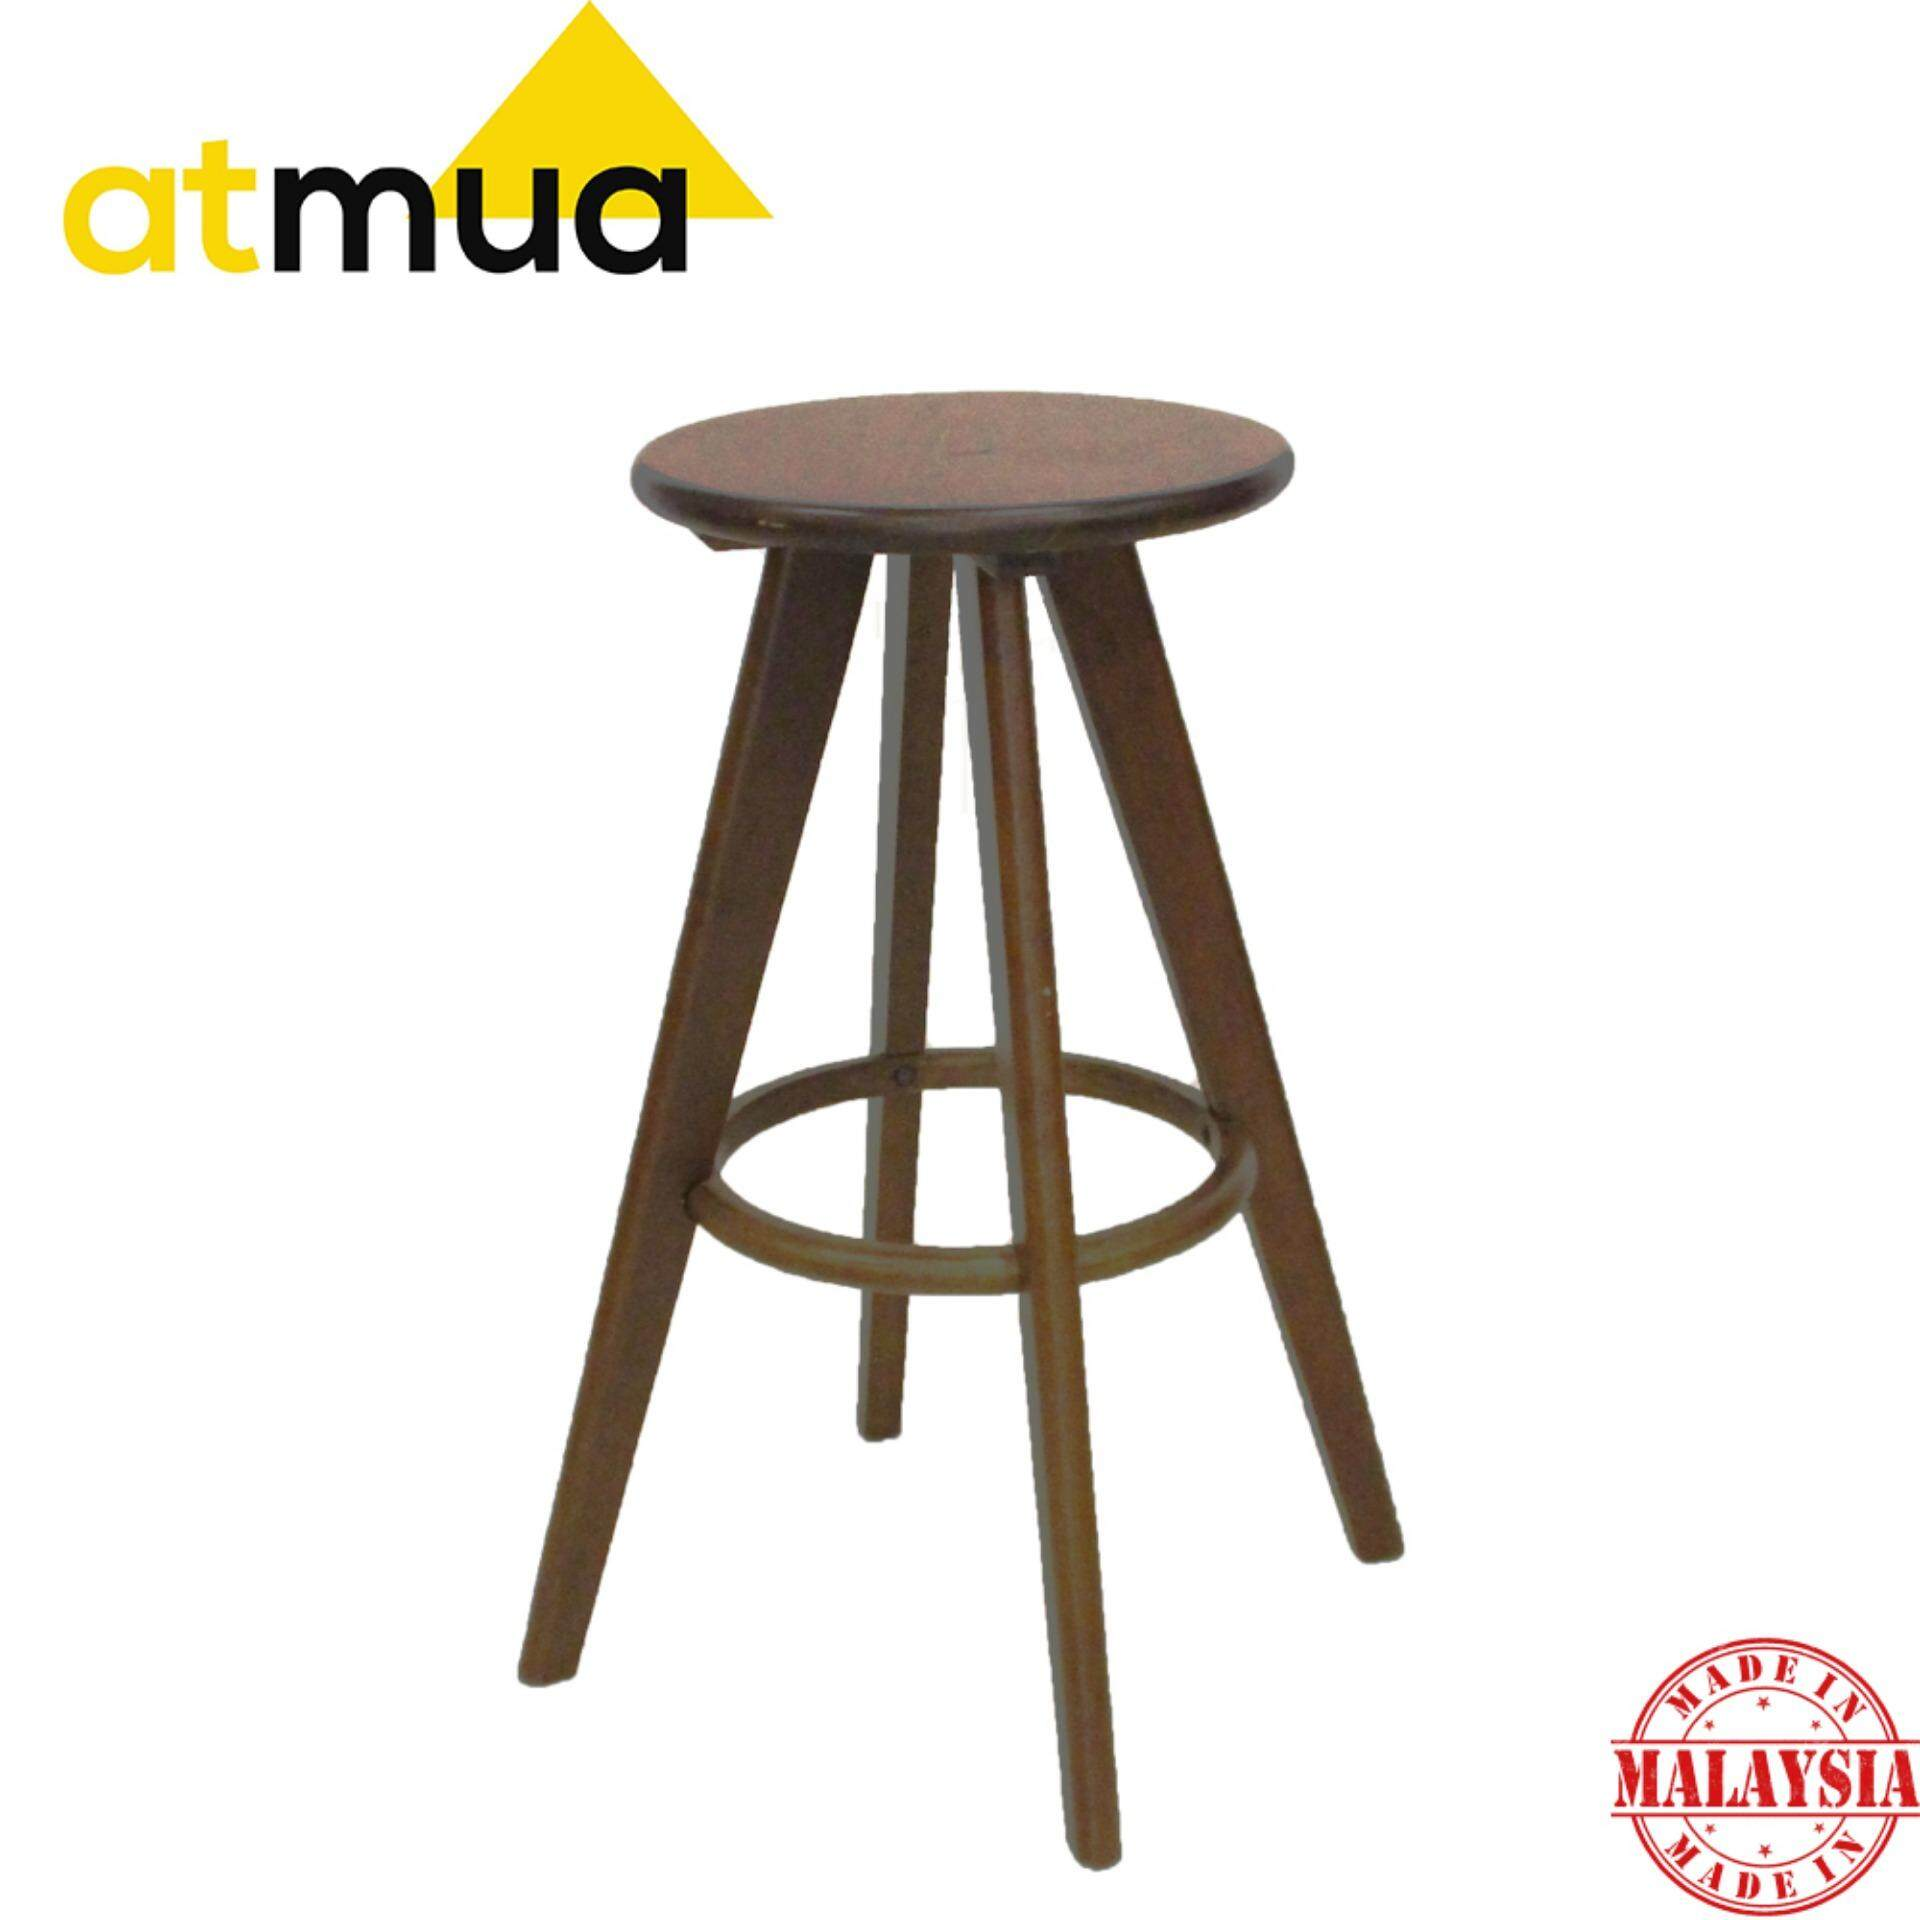 Groovy Atmua Jonathan Solid Wood Bar Stool Height 70Cm 30 Inch Solid Rubber Wood Theyellowbook Wood Chair Design Ideas Theyellowbookinfo